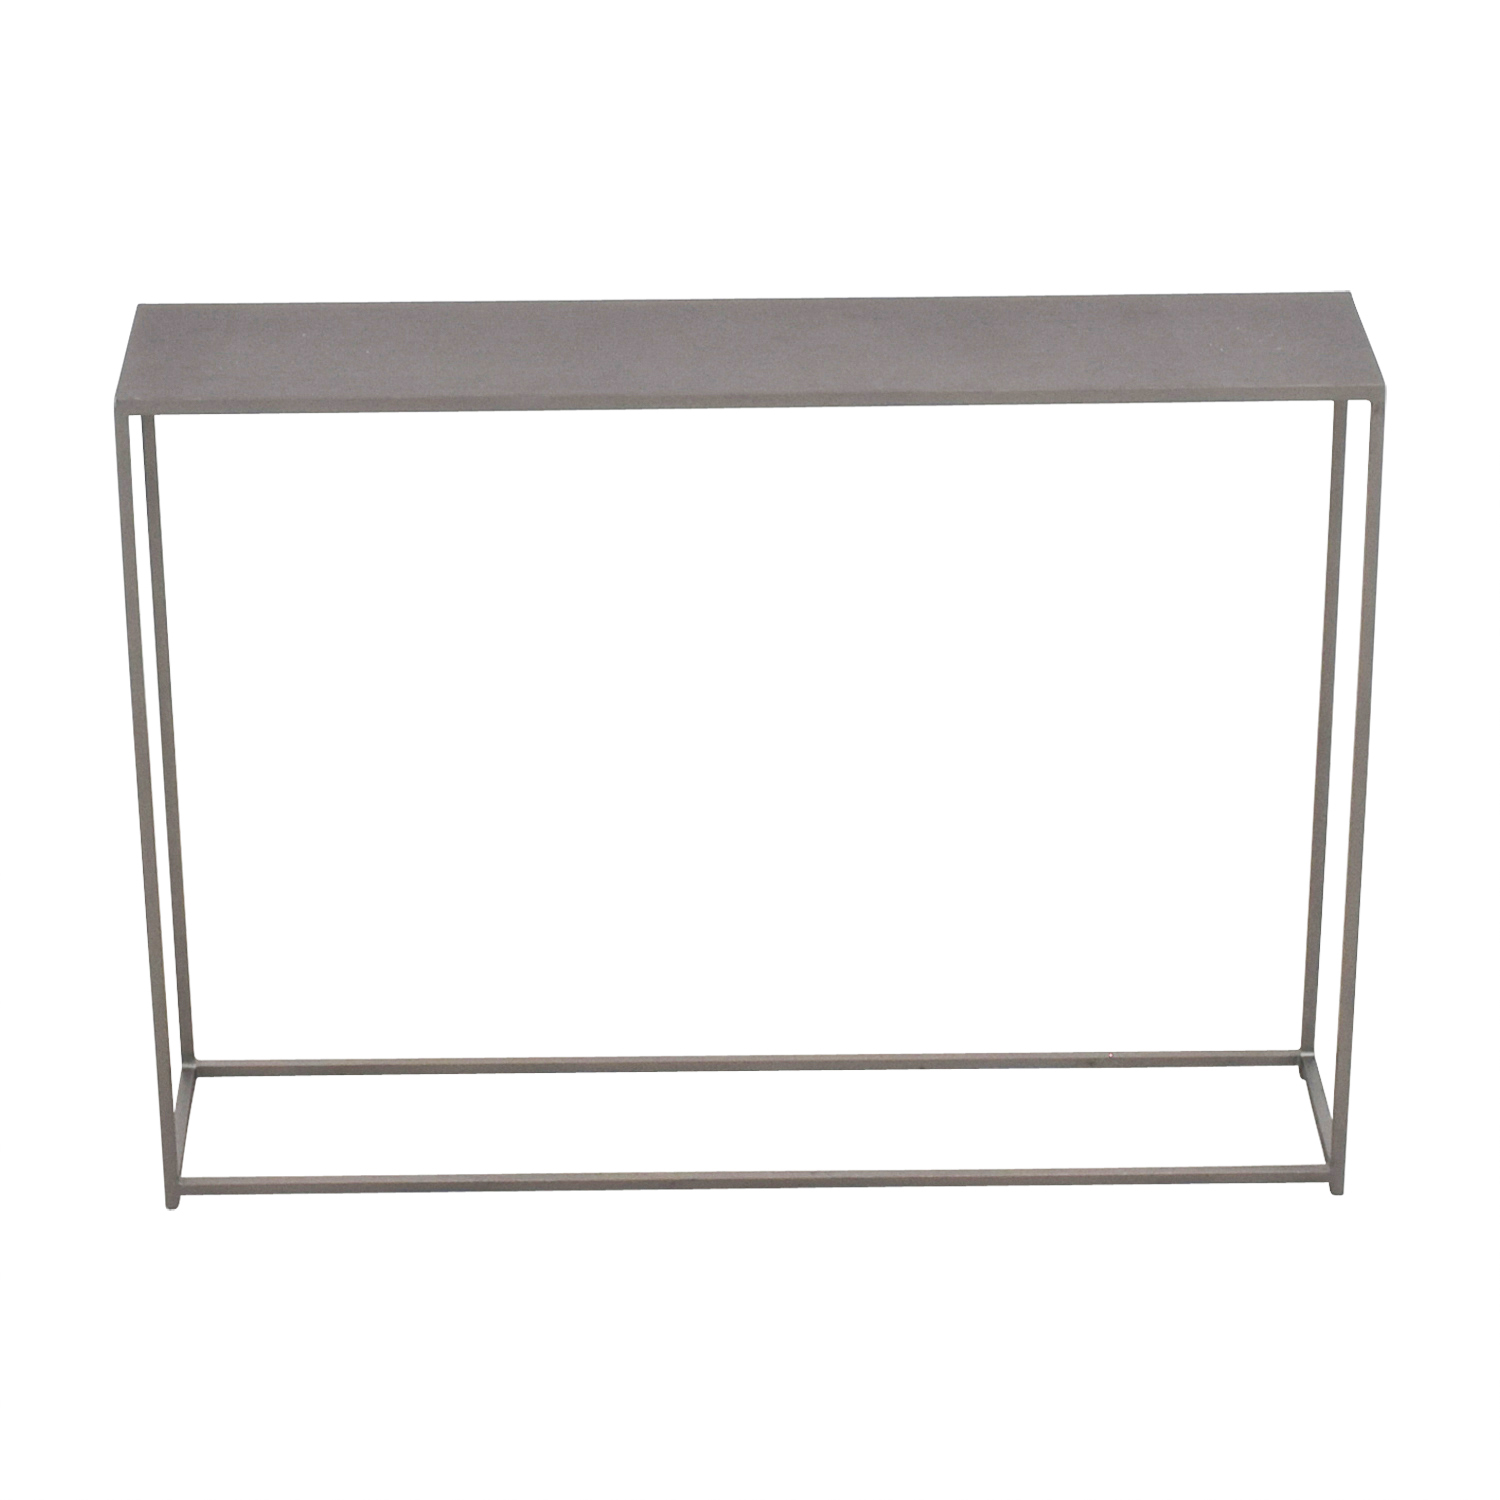 CB2 CB2 Mill Mini Console Grey